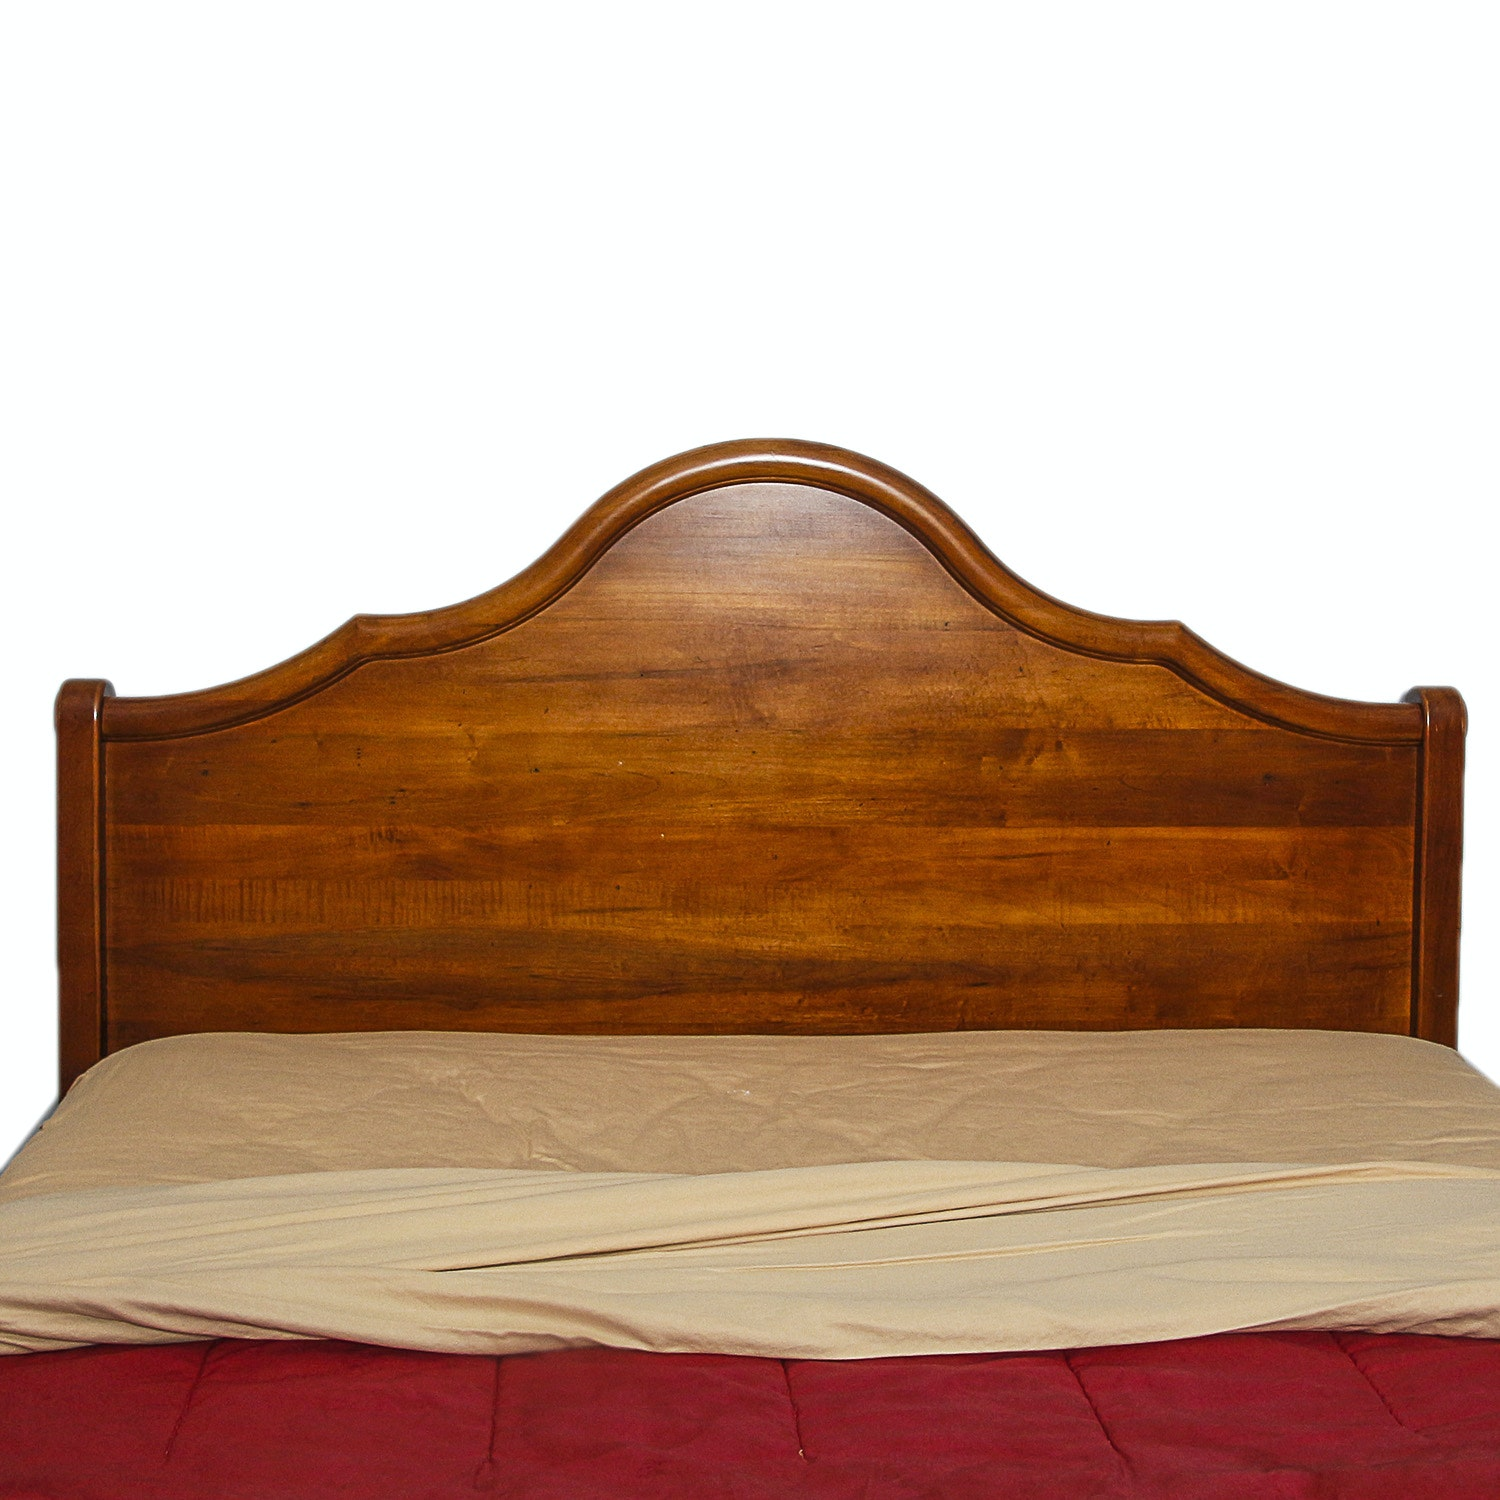 Contemporary Walnut-Finished Queen-Sized Headboard